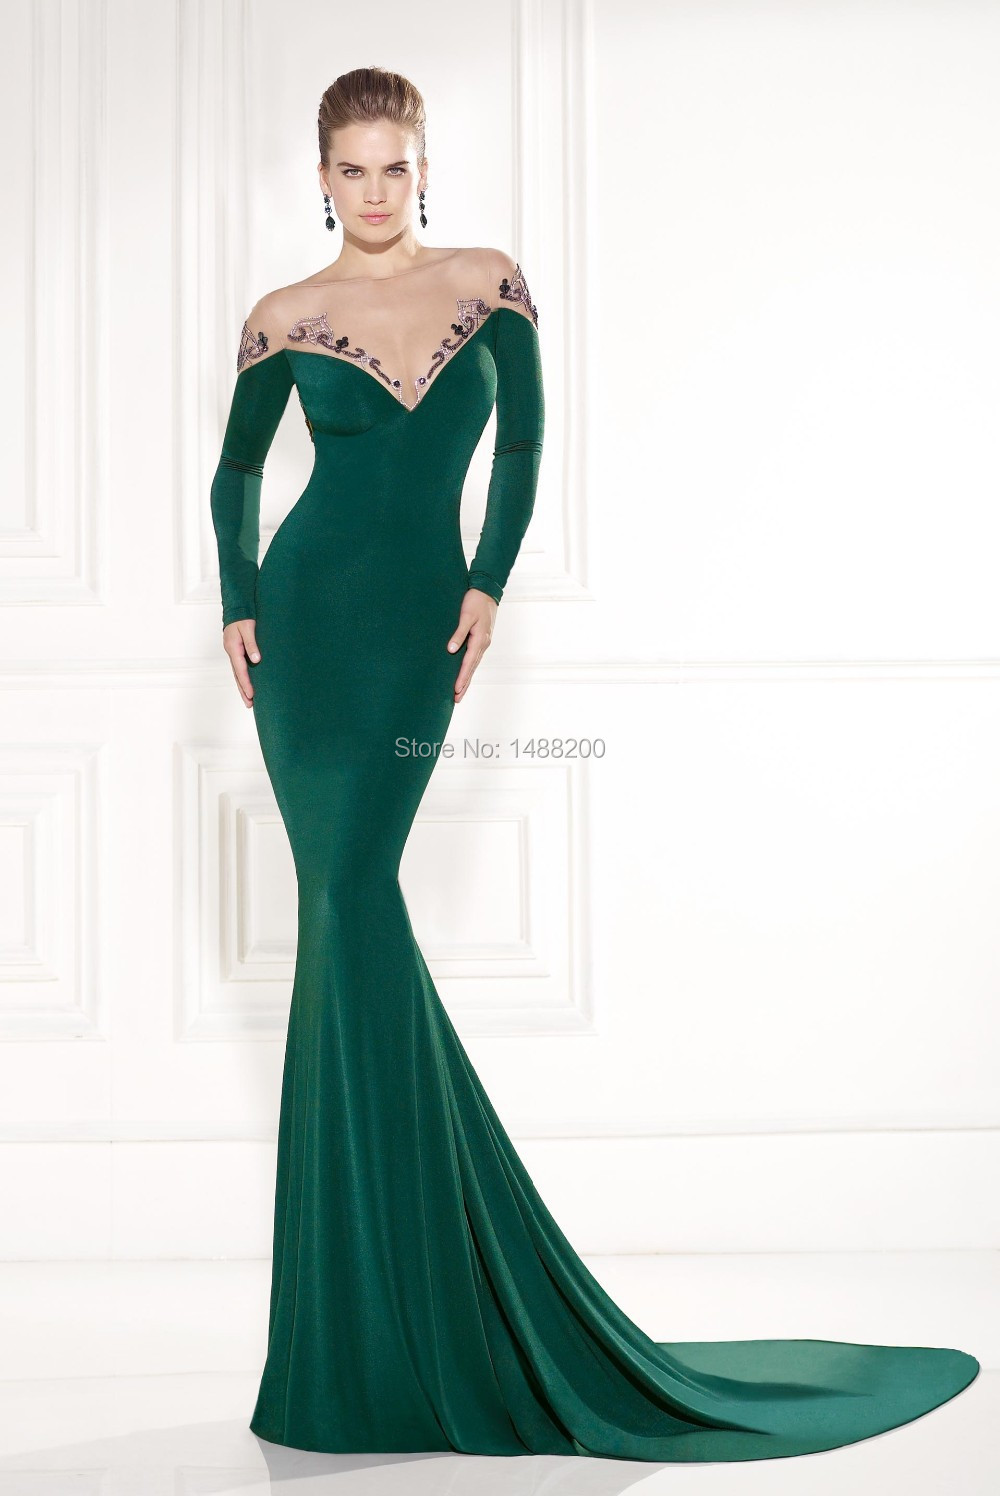 Compare Prices on Zuhair Murad Evening Green Dress- Online ...